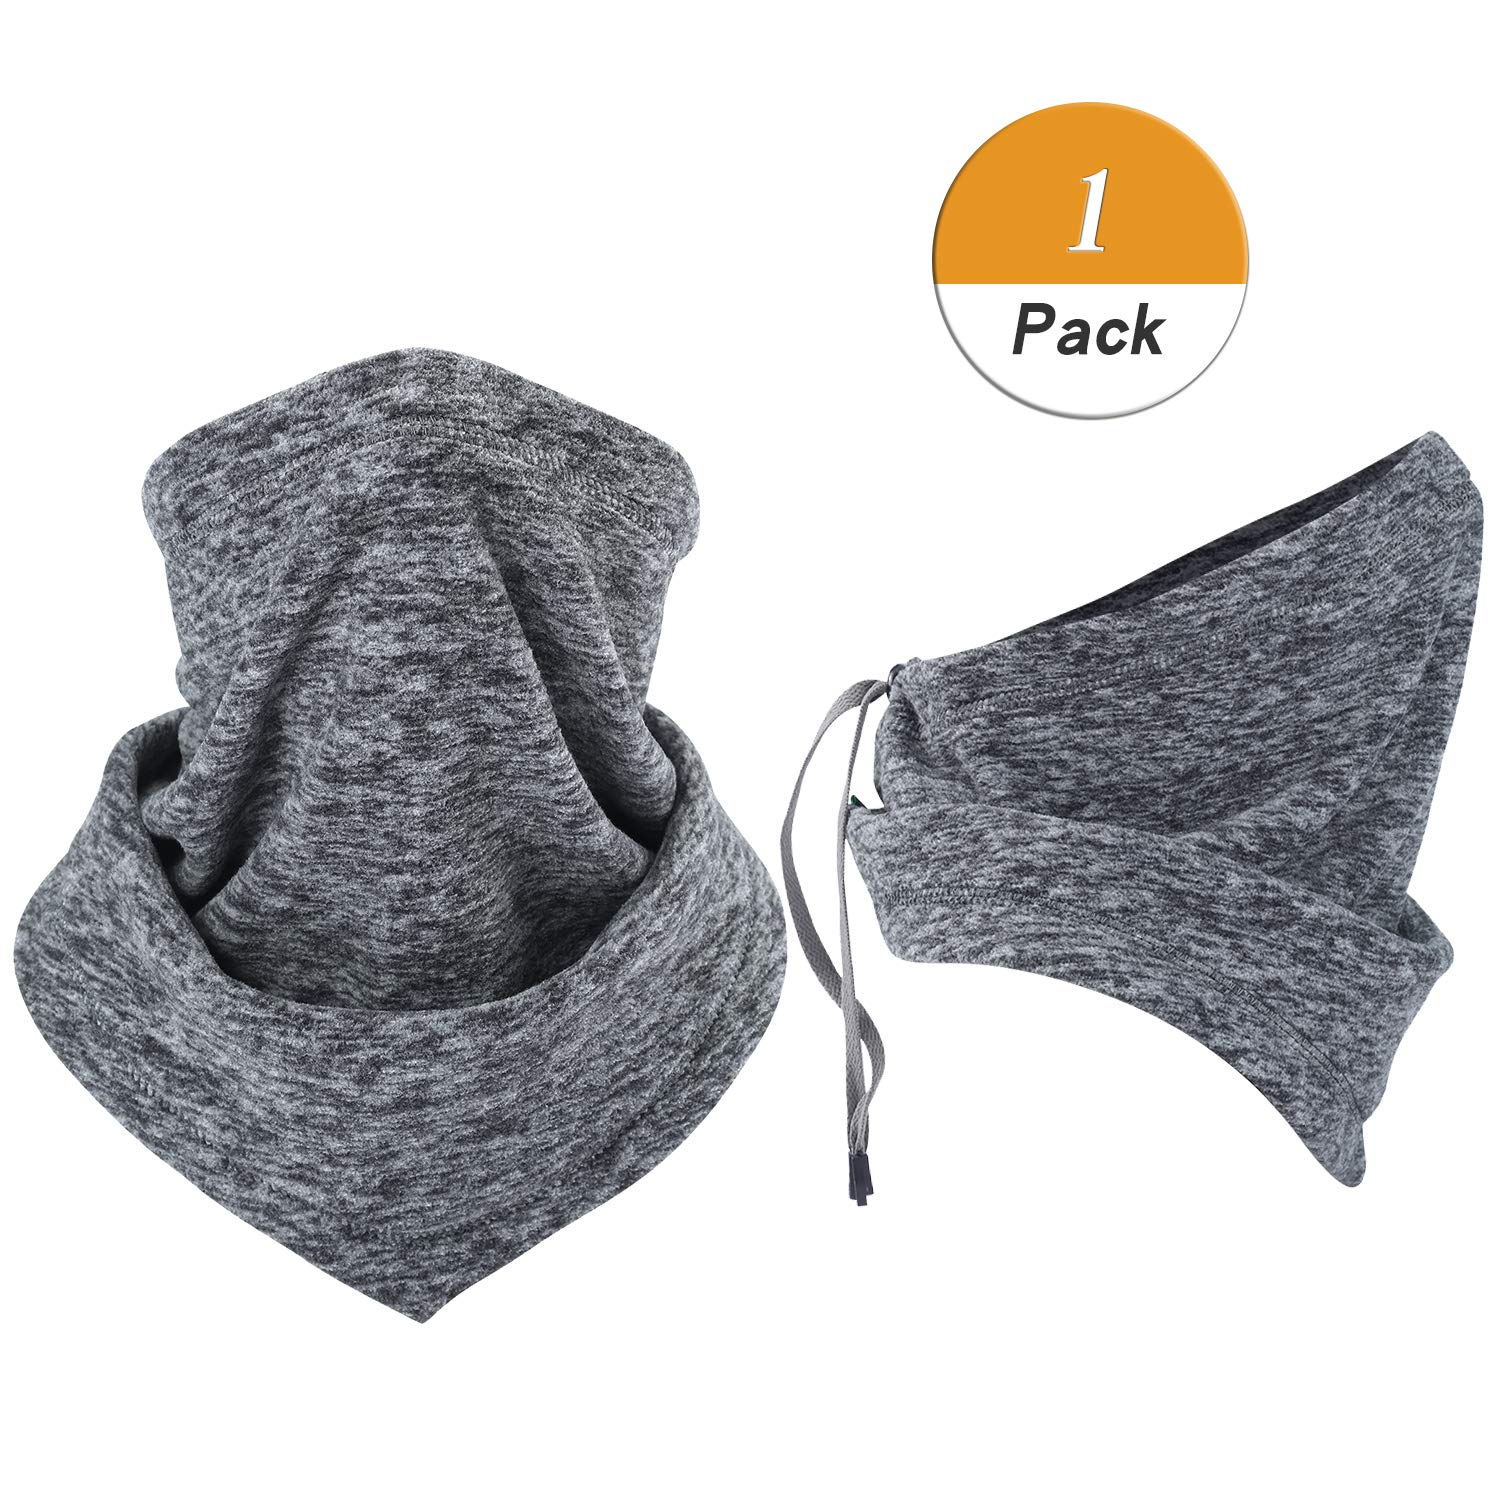 380b52e1c2b Neck Gaiter Warmer-Windproof Thicken Winter Face Mask Cold Weather Sking  Scarf  Amazon.in  Clothing   Accessories